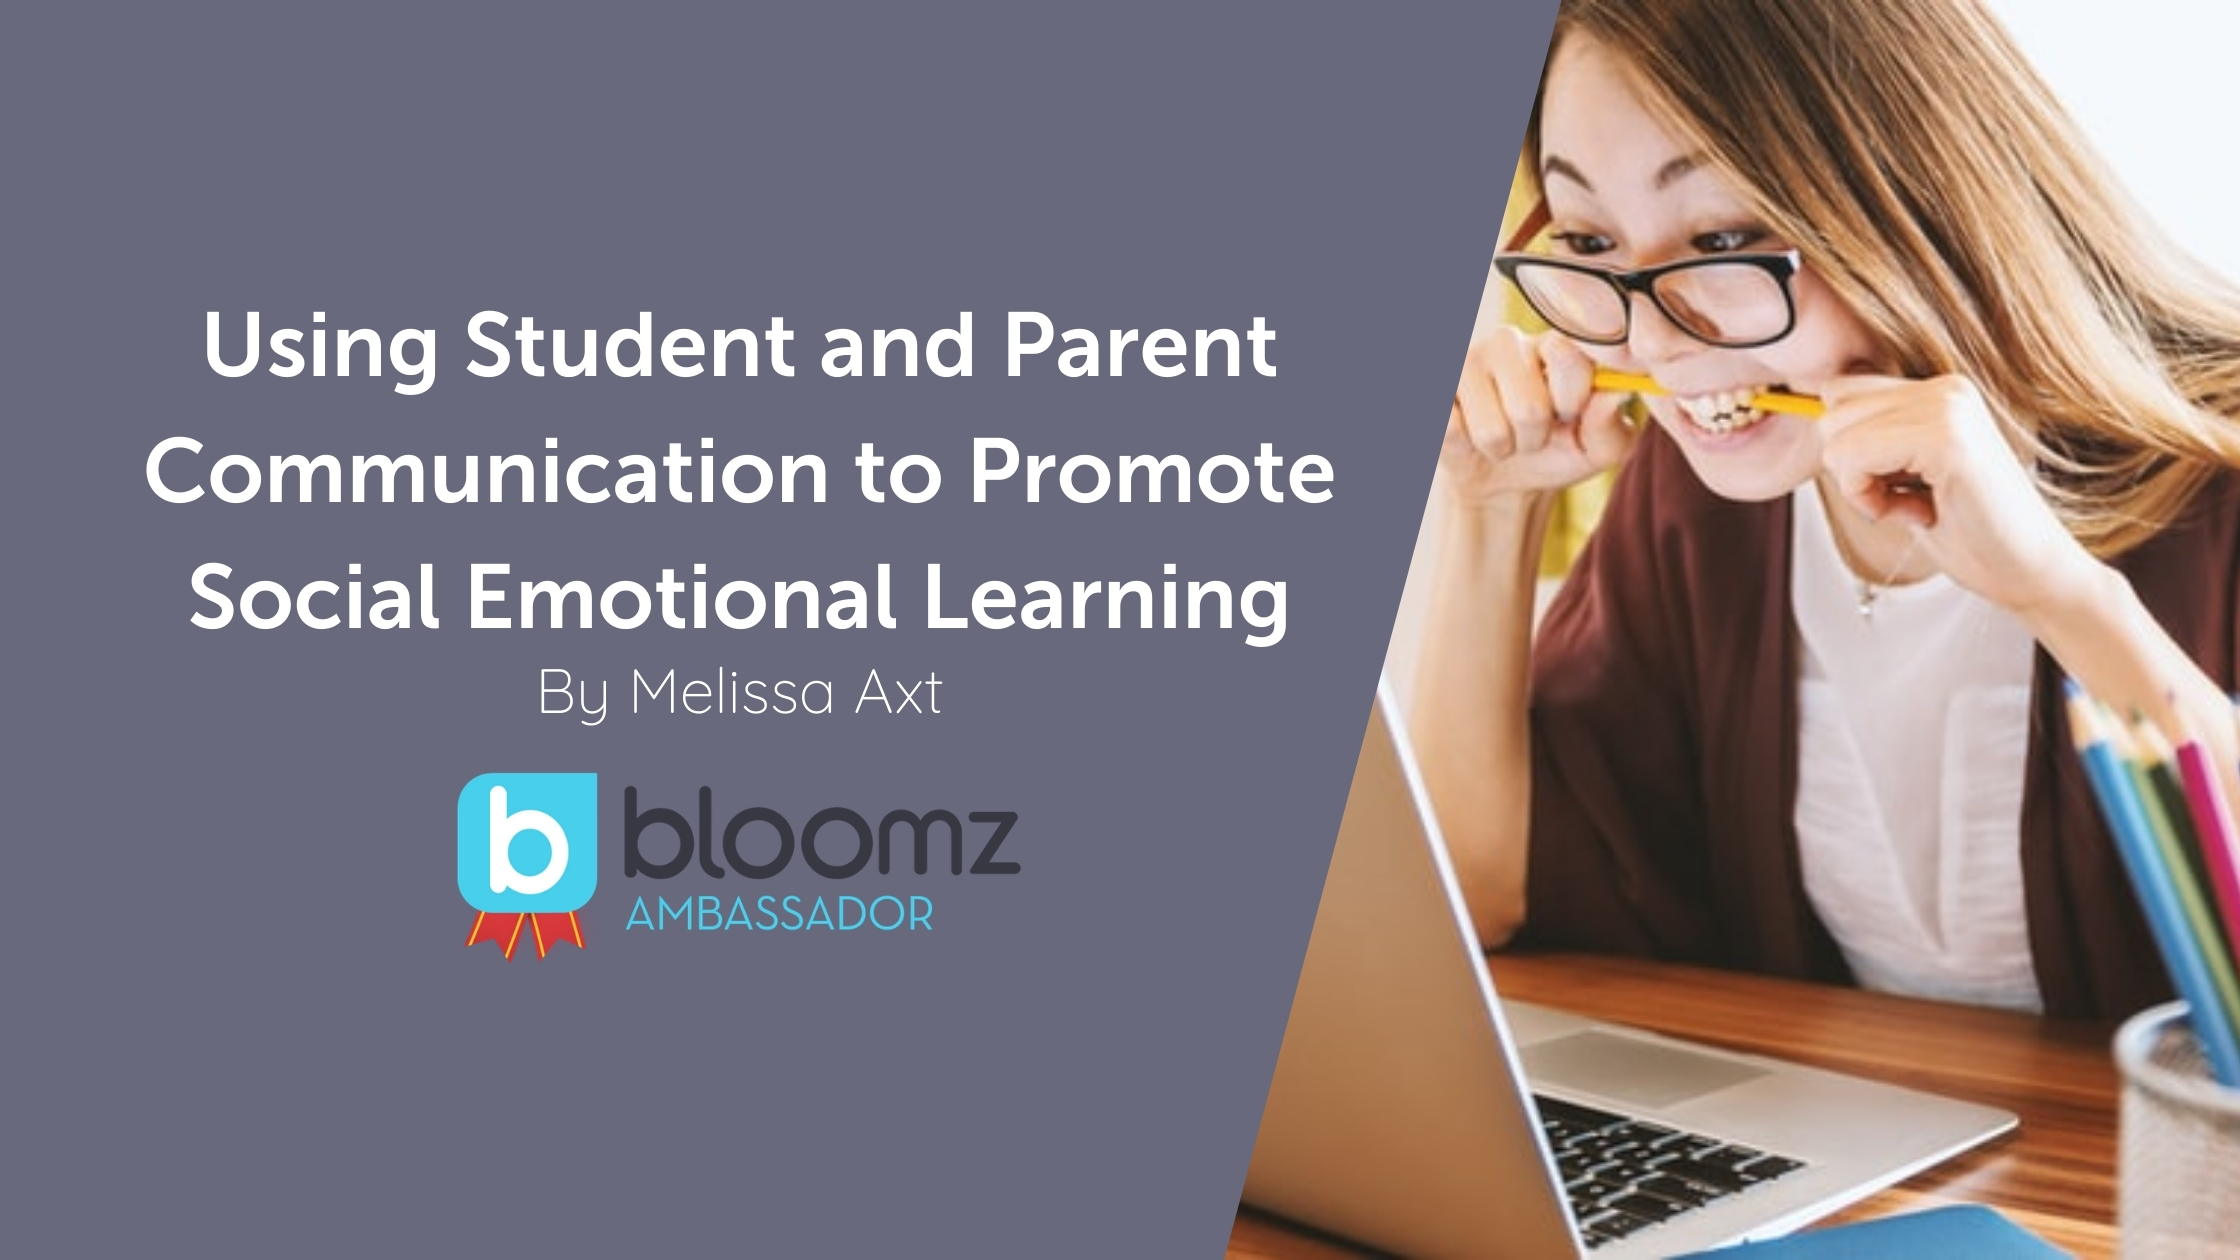 Using Student and Parent Communication to Promote Social Emotional Learning